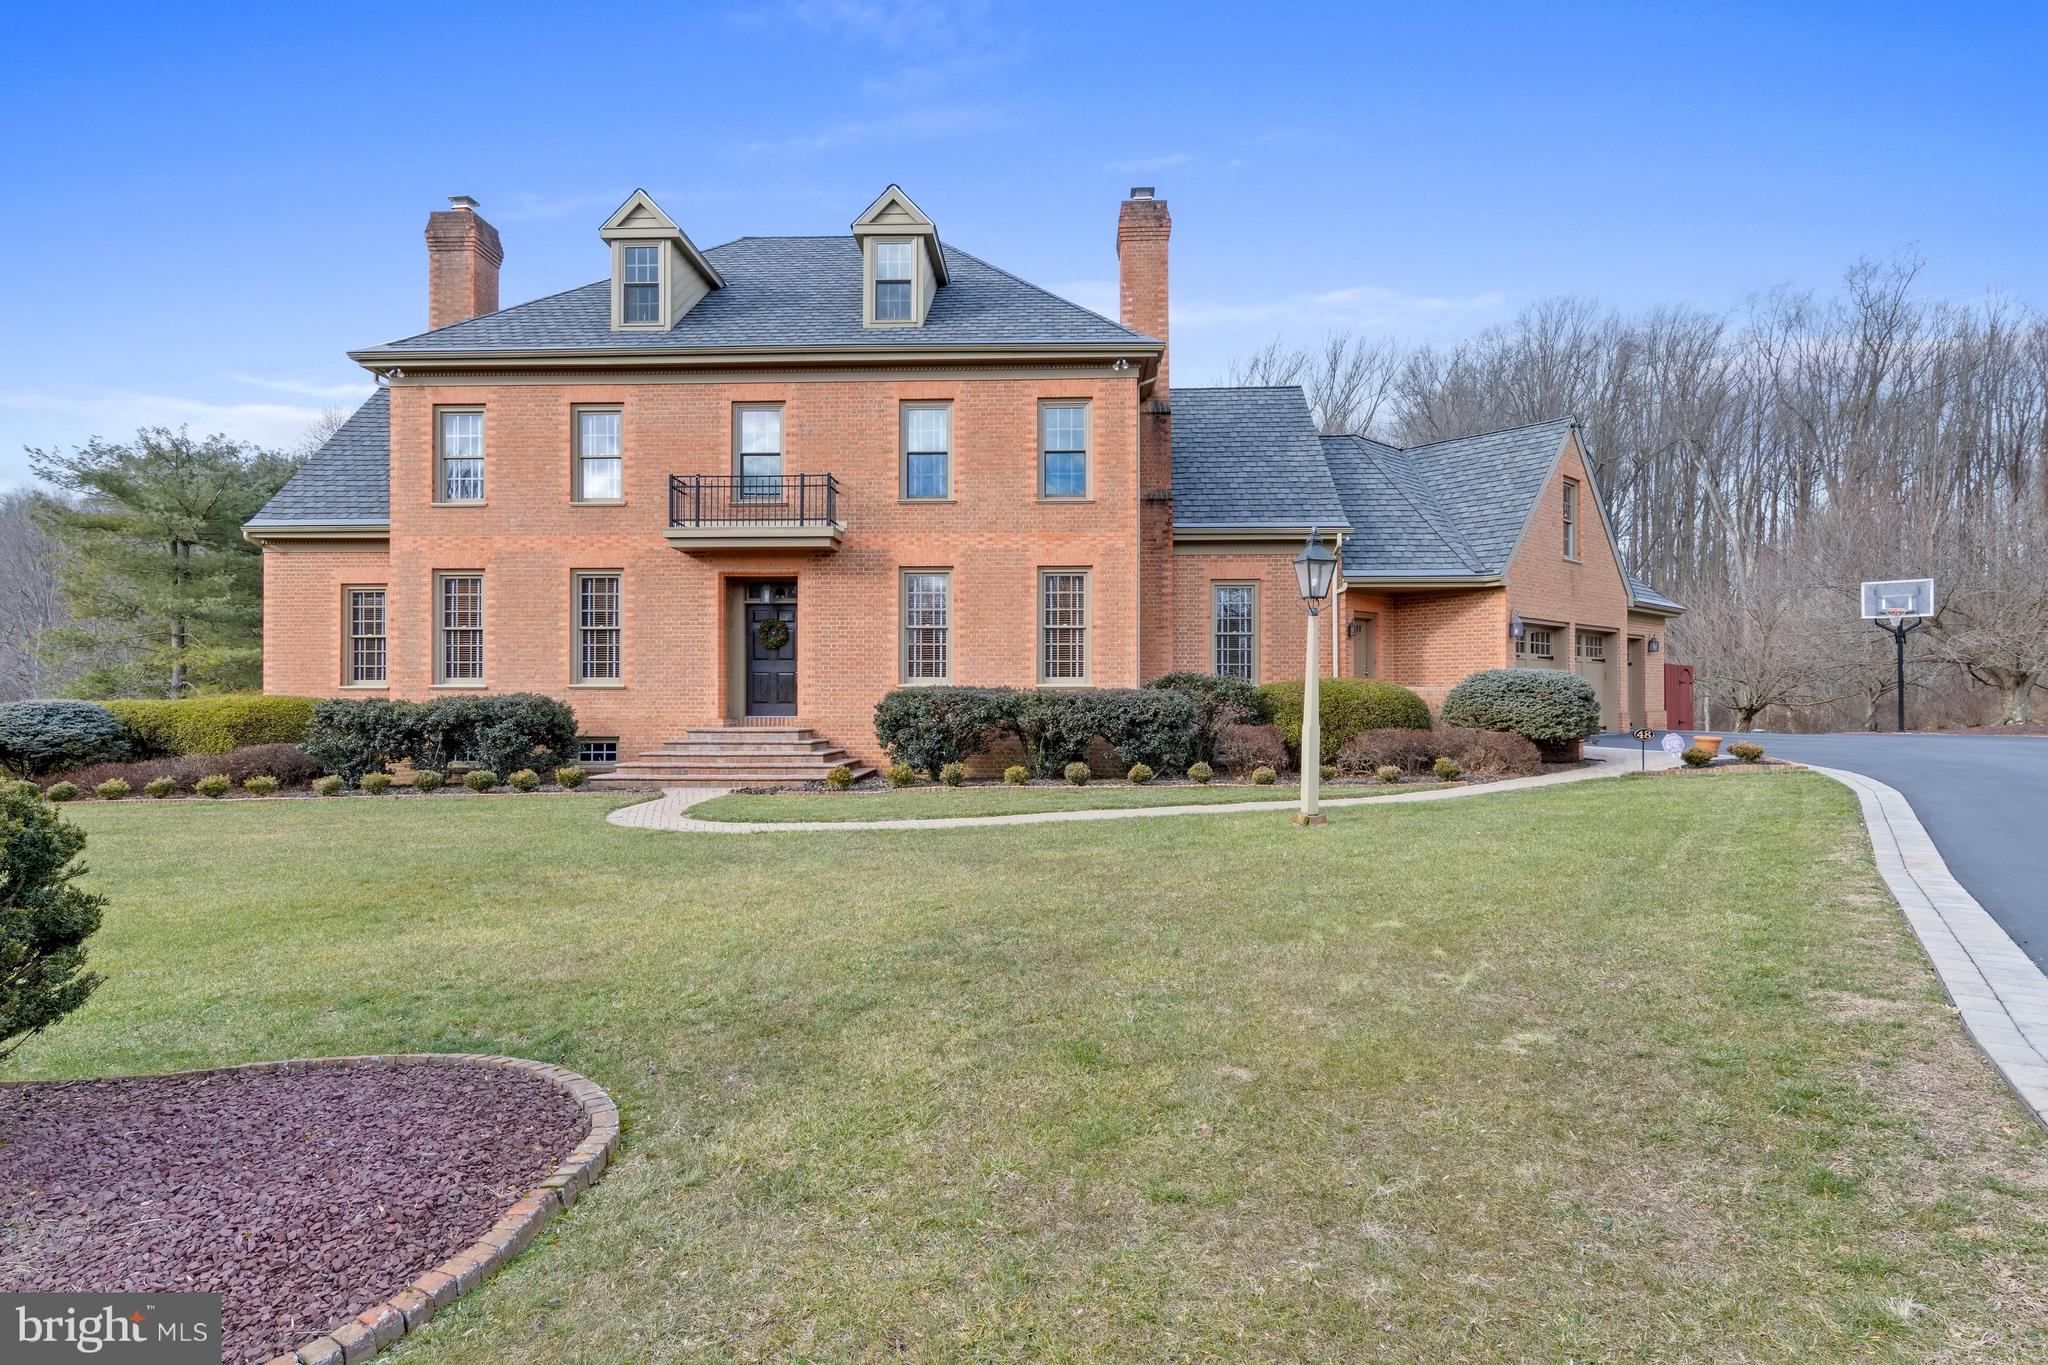 This stunning classic brick colonial home is set on a private lot cul-de-sac and was modeled after the Joseph Howard Hennage House of Williamsburg, VA. The exterior is made of genuine Cushwa Brick and was constructed using the Flemish bond fashion, the hallmark of Classical Architecture first appearing in medieval Europe's Frauenkirche of Munich in 1468 with the earliest surviving American example on St. Lukes Church, Isle of Wight County, VA. Enter into the impressive foyer with spiral staircase fashioned after the spiral stairway of the Rotunda of the University of Virginia. Immediately notice the gleaming hardwood floors that run throughout most of the home as well as the custom millwork by Van Heyneker Fine Woodwoking and the Larkin Co. The foyer is flanked by the formal living and dining rooms both with wood fireplaces. Continue straight to the custom chef's kitchen with custom inlay 2-tone cabinetry, island with seating, top-of-the-line appliances and hidden pantry. Connected to the kitchen is a breakfast room with walls of windows overlooking the private yard. The 2-story family room sits off of the kitchen with built-in media center and gas fireplace. The private study is tucked at the end of the hall with built-in shelving. A sun room sits off of the kitchen and offers an abundance of natural light. Both formal and informal powder rooms, laundry room and access to the 3-car garage with doors by Designer Doors, Inc complete the main level. Up the main staircase find the owner's suite with his and hers walk-in closets and beautiful Waterbury bathroom. Two additional bedrooms share an updated guest bath and a large in-law suite with 5 piece bathroom finishes the second level. Continue to the unfinished 3rd level which offers endless possibilities for customization. The finished walk-out lower level is currently set up for an in-home gym and has a full bath. Enter the sprawling brick patio through numerous entrances from the main level and relax by the heated p